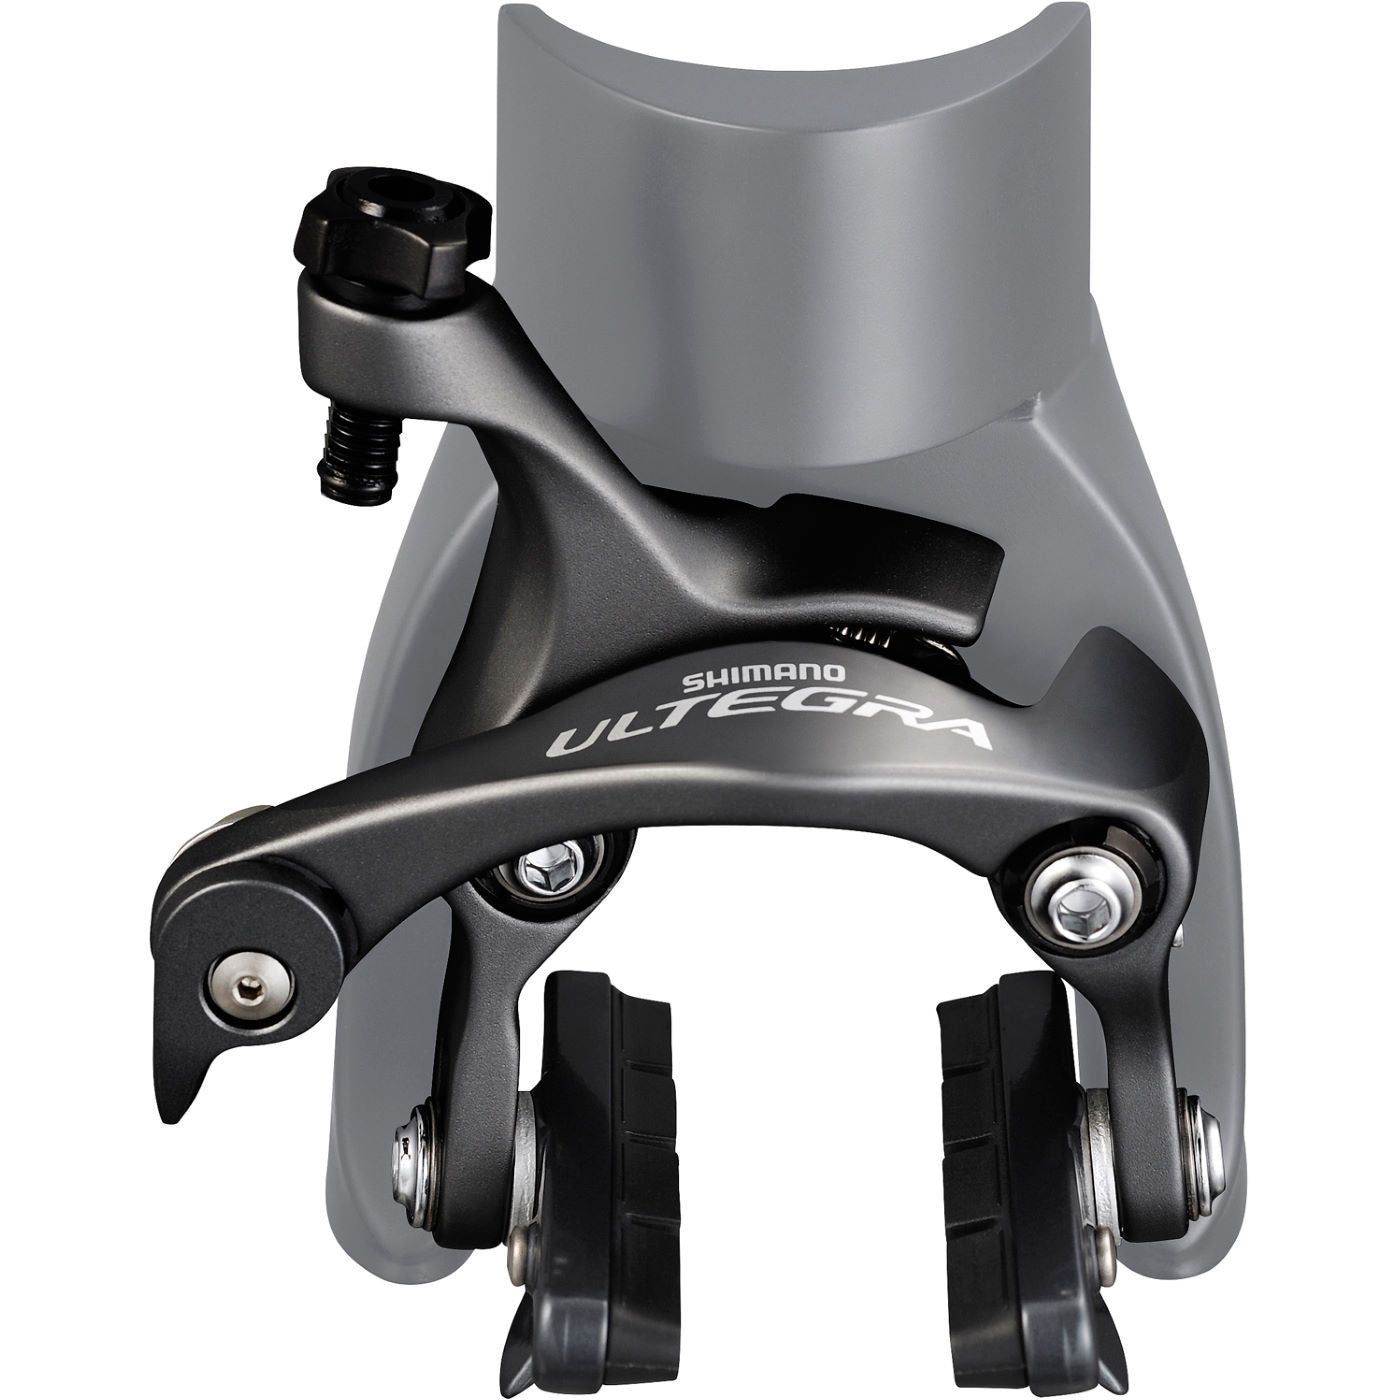 Shimano Ultegra BR-6810 Direct Mount Front Brake